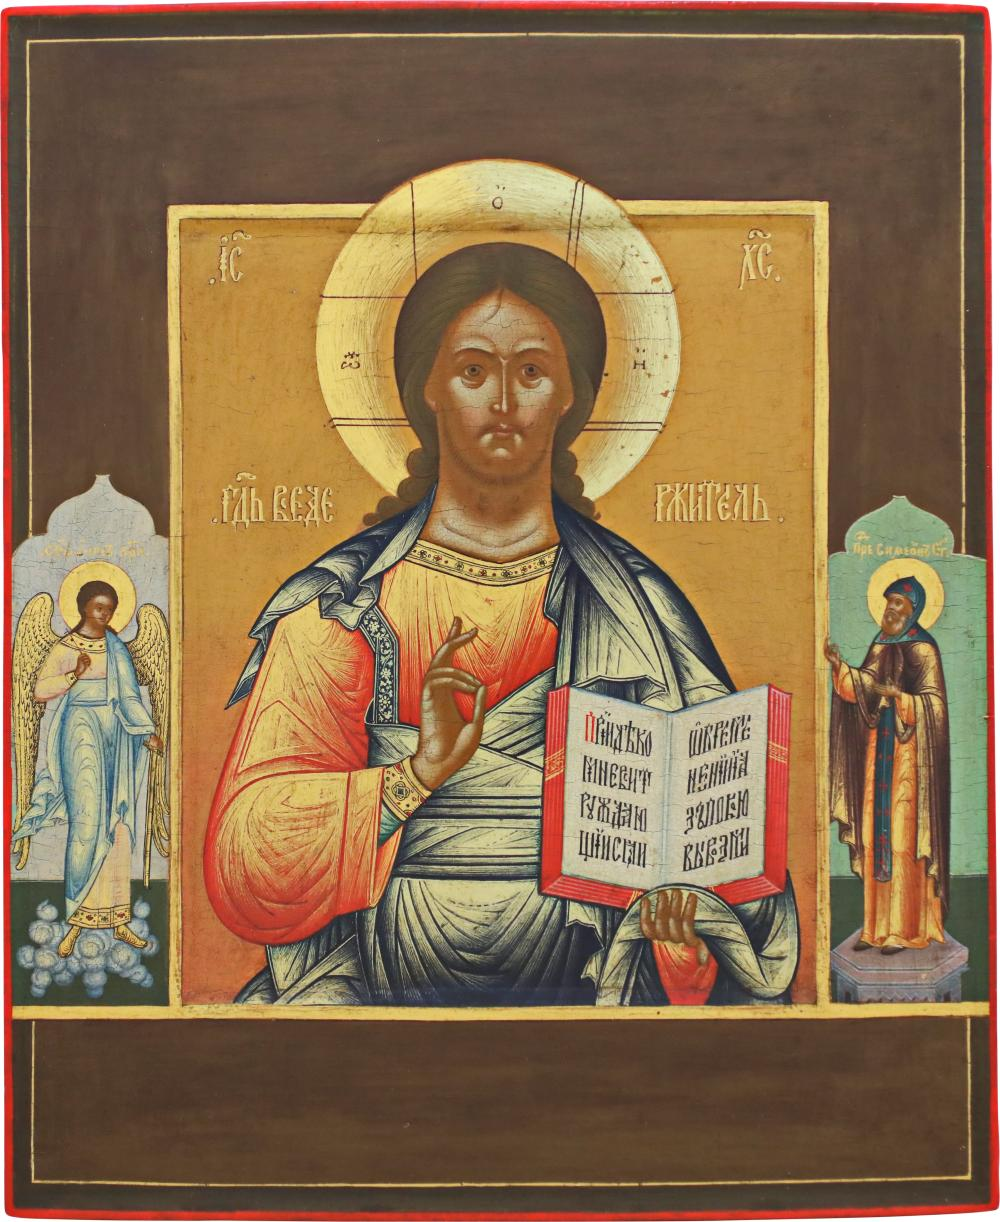 A SMALL DATED ICON SHOWING CHRIST PANTOKRATOR